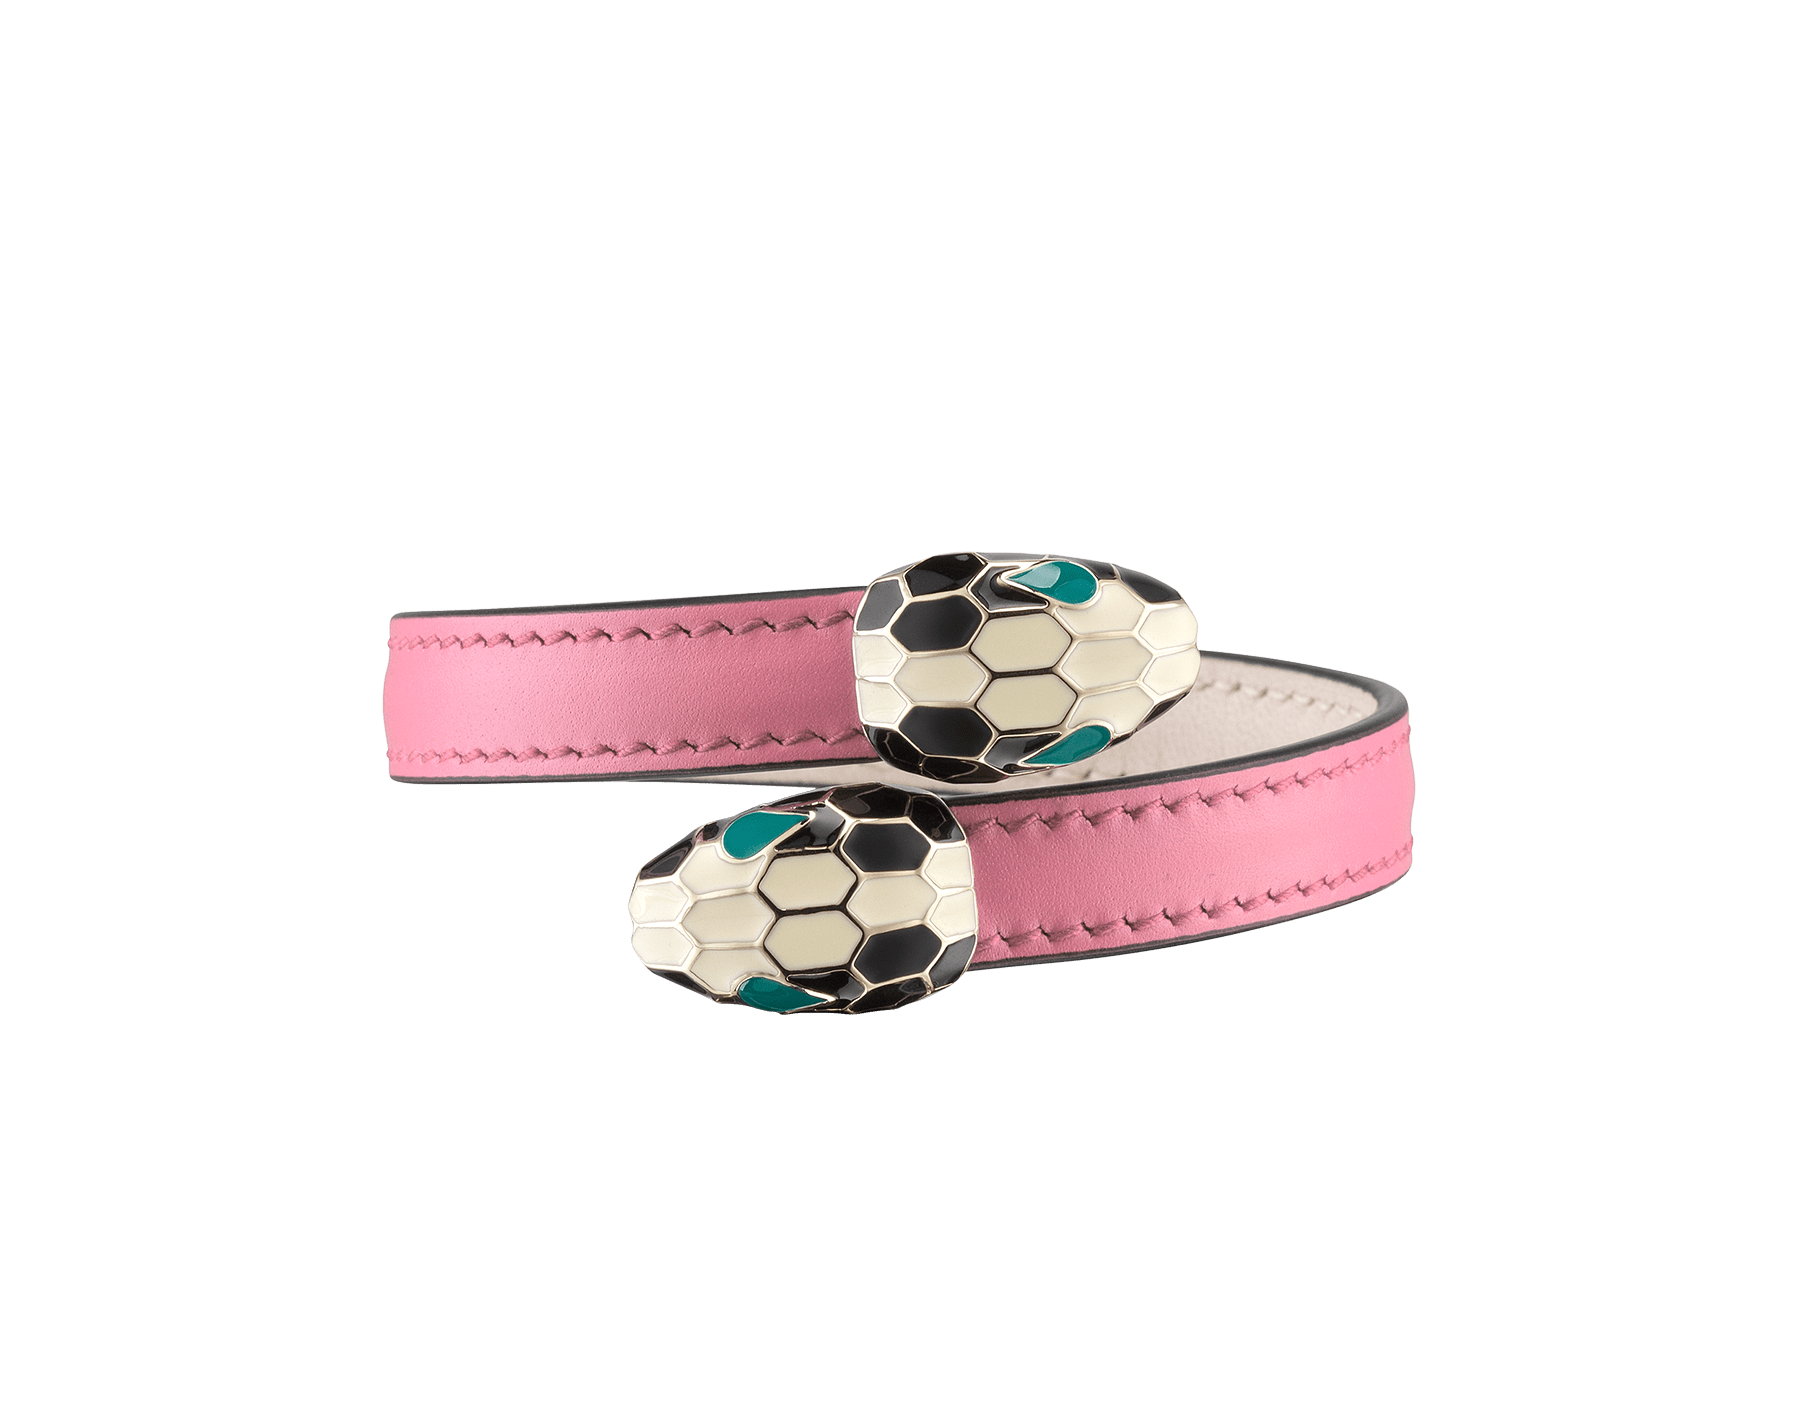 Serpenti Forever soft bangle bracelet in candy quartz calf leather, with brass light gold plated hardware. Iconic contraire snakehead décor in black and white enamel, with green enamel eyes SerpSoftContr-CL-CQ image 3